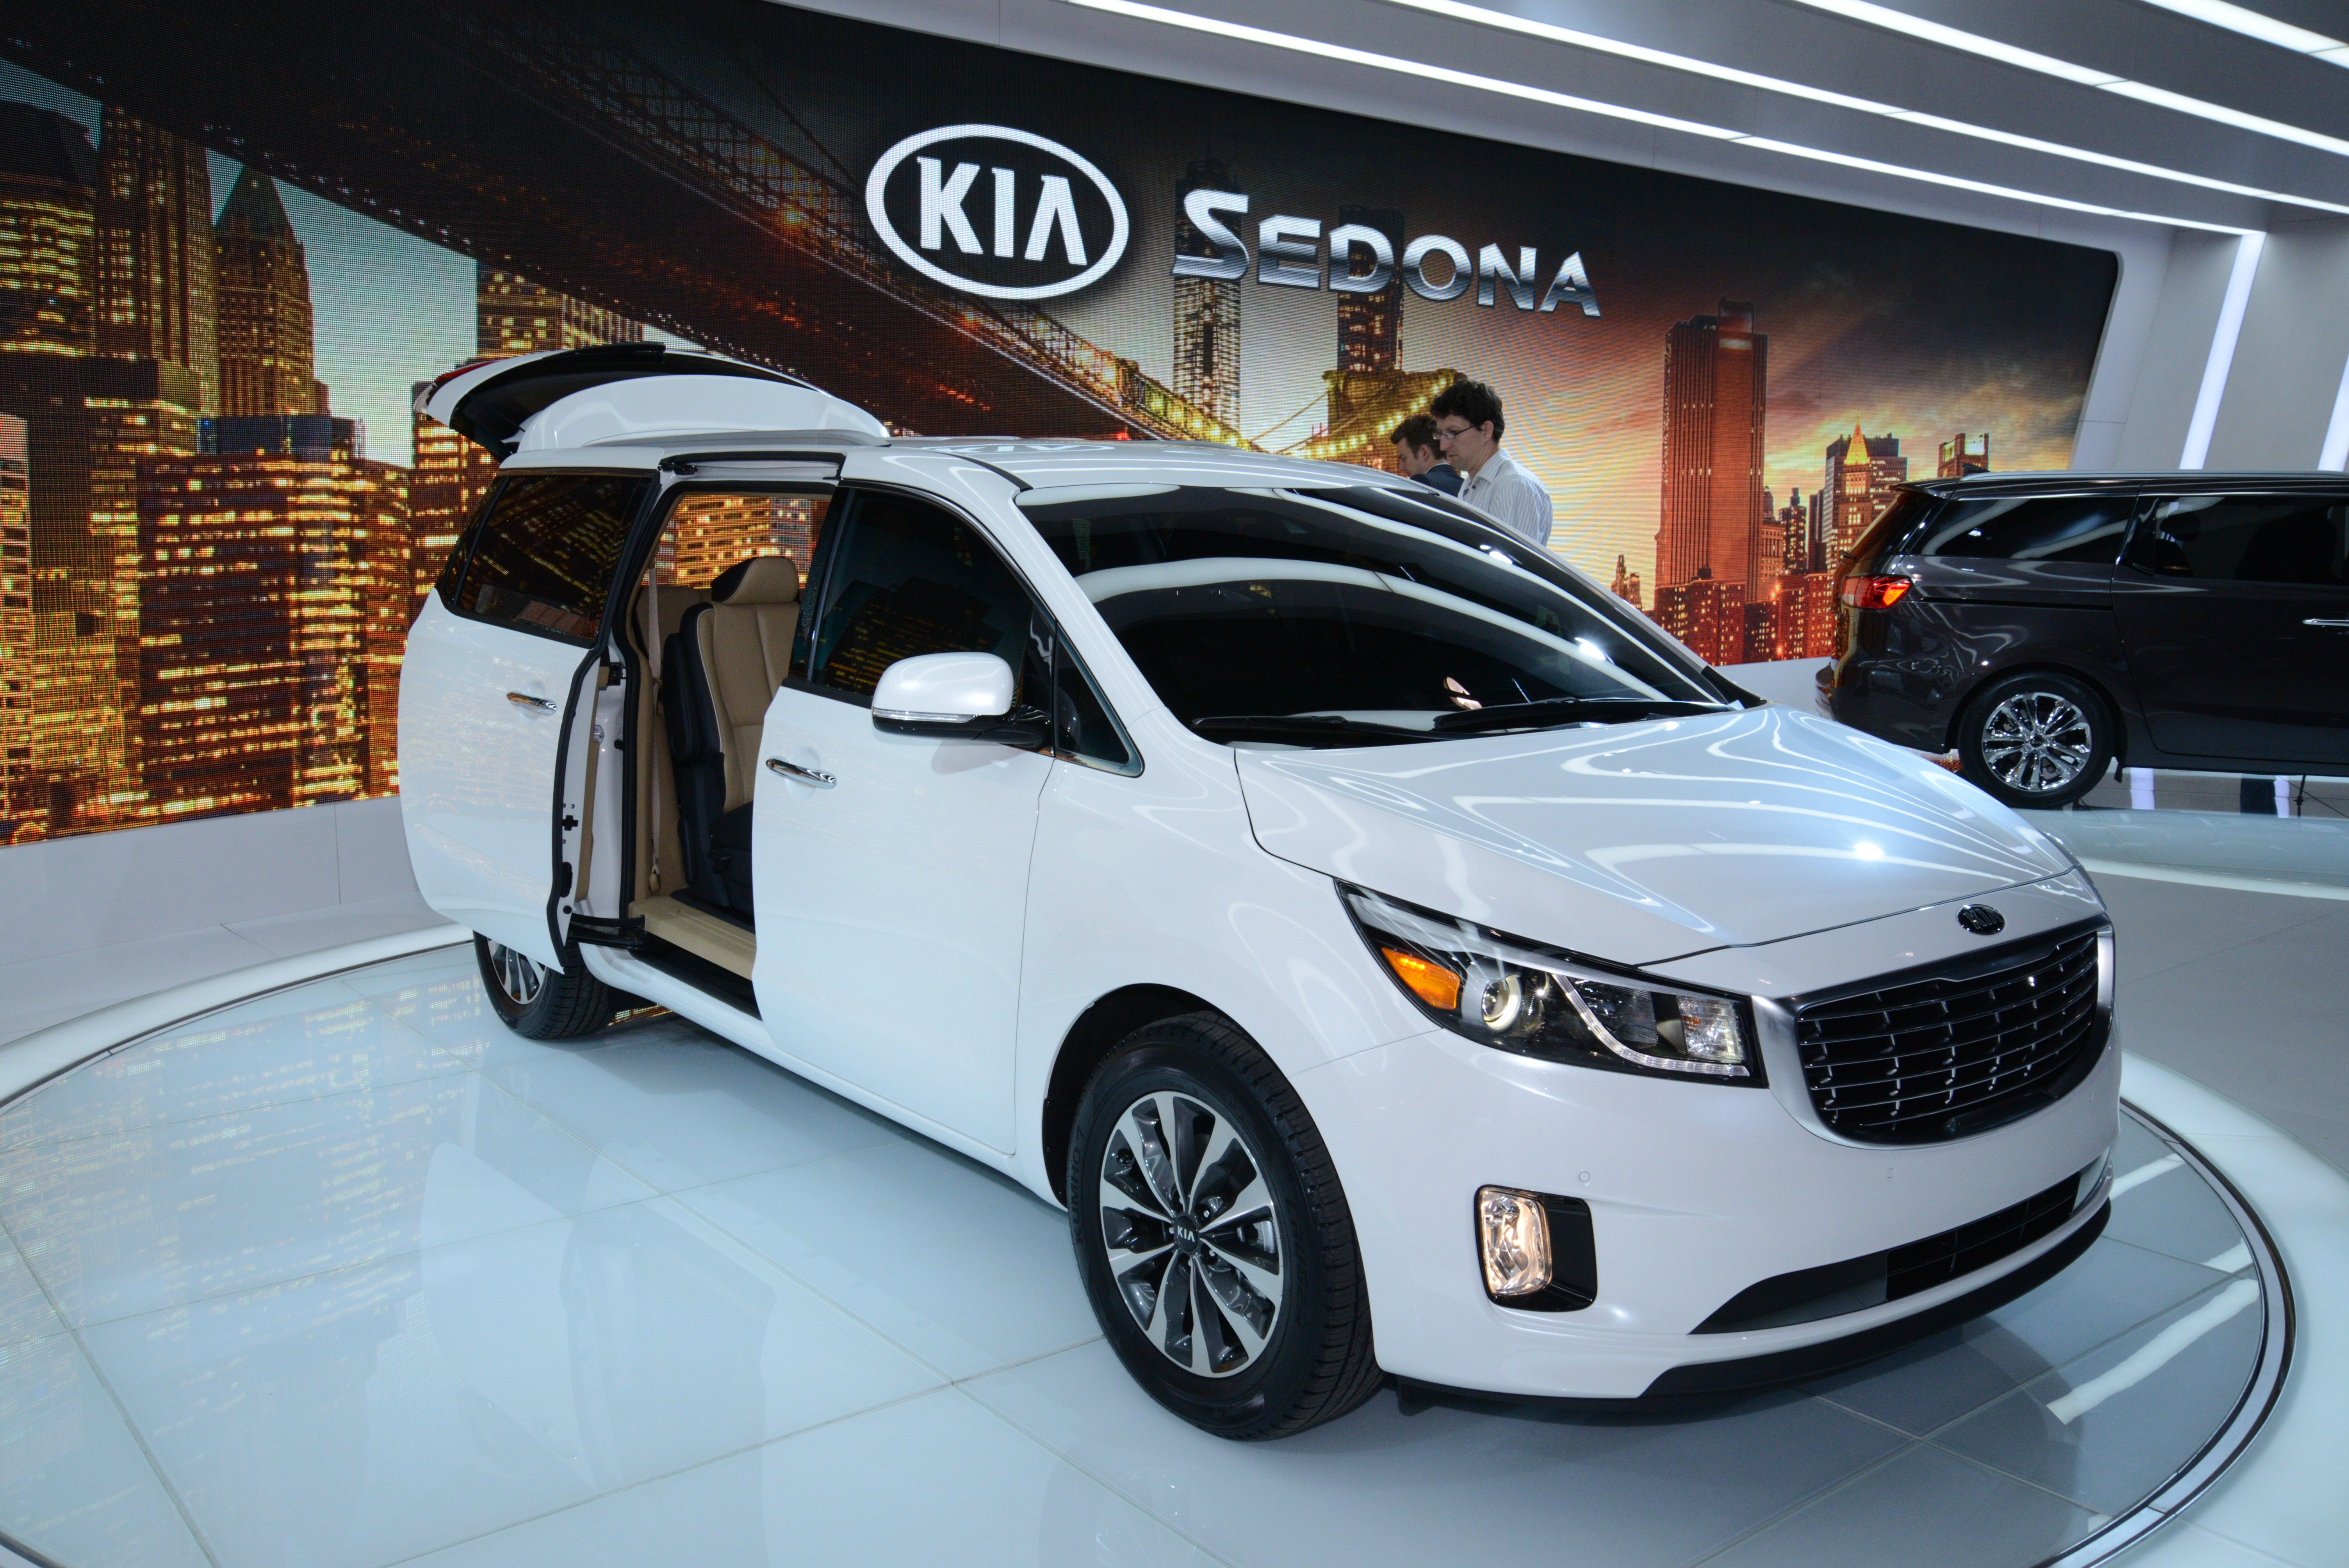 2015 Kia Carnival / Sedona breaks cover in New York Image ...